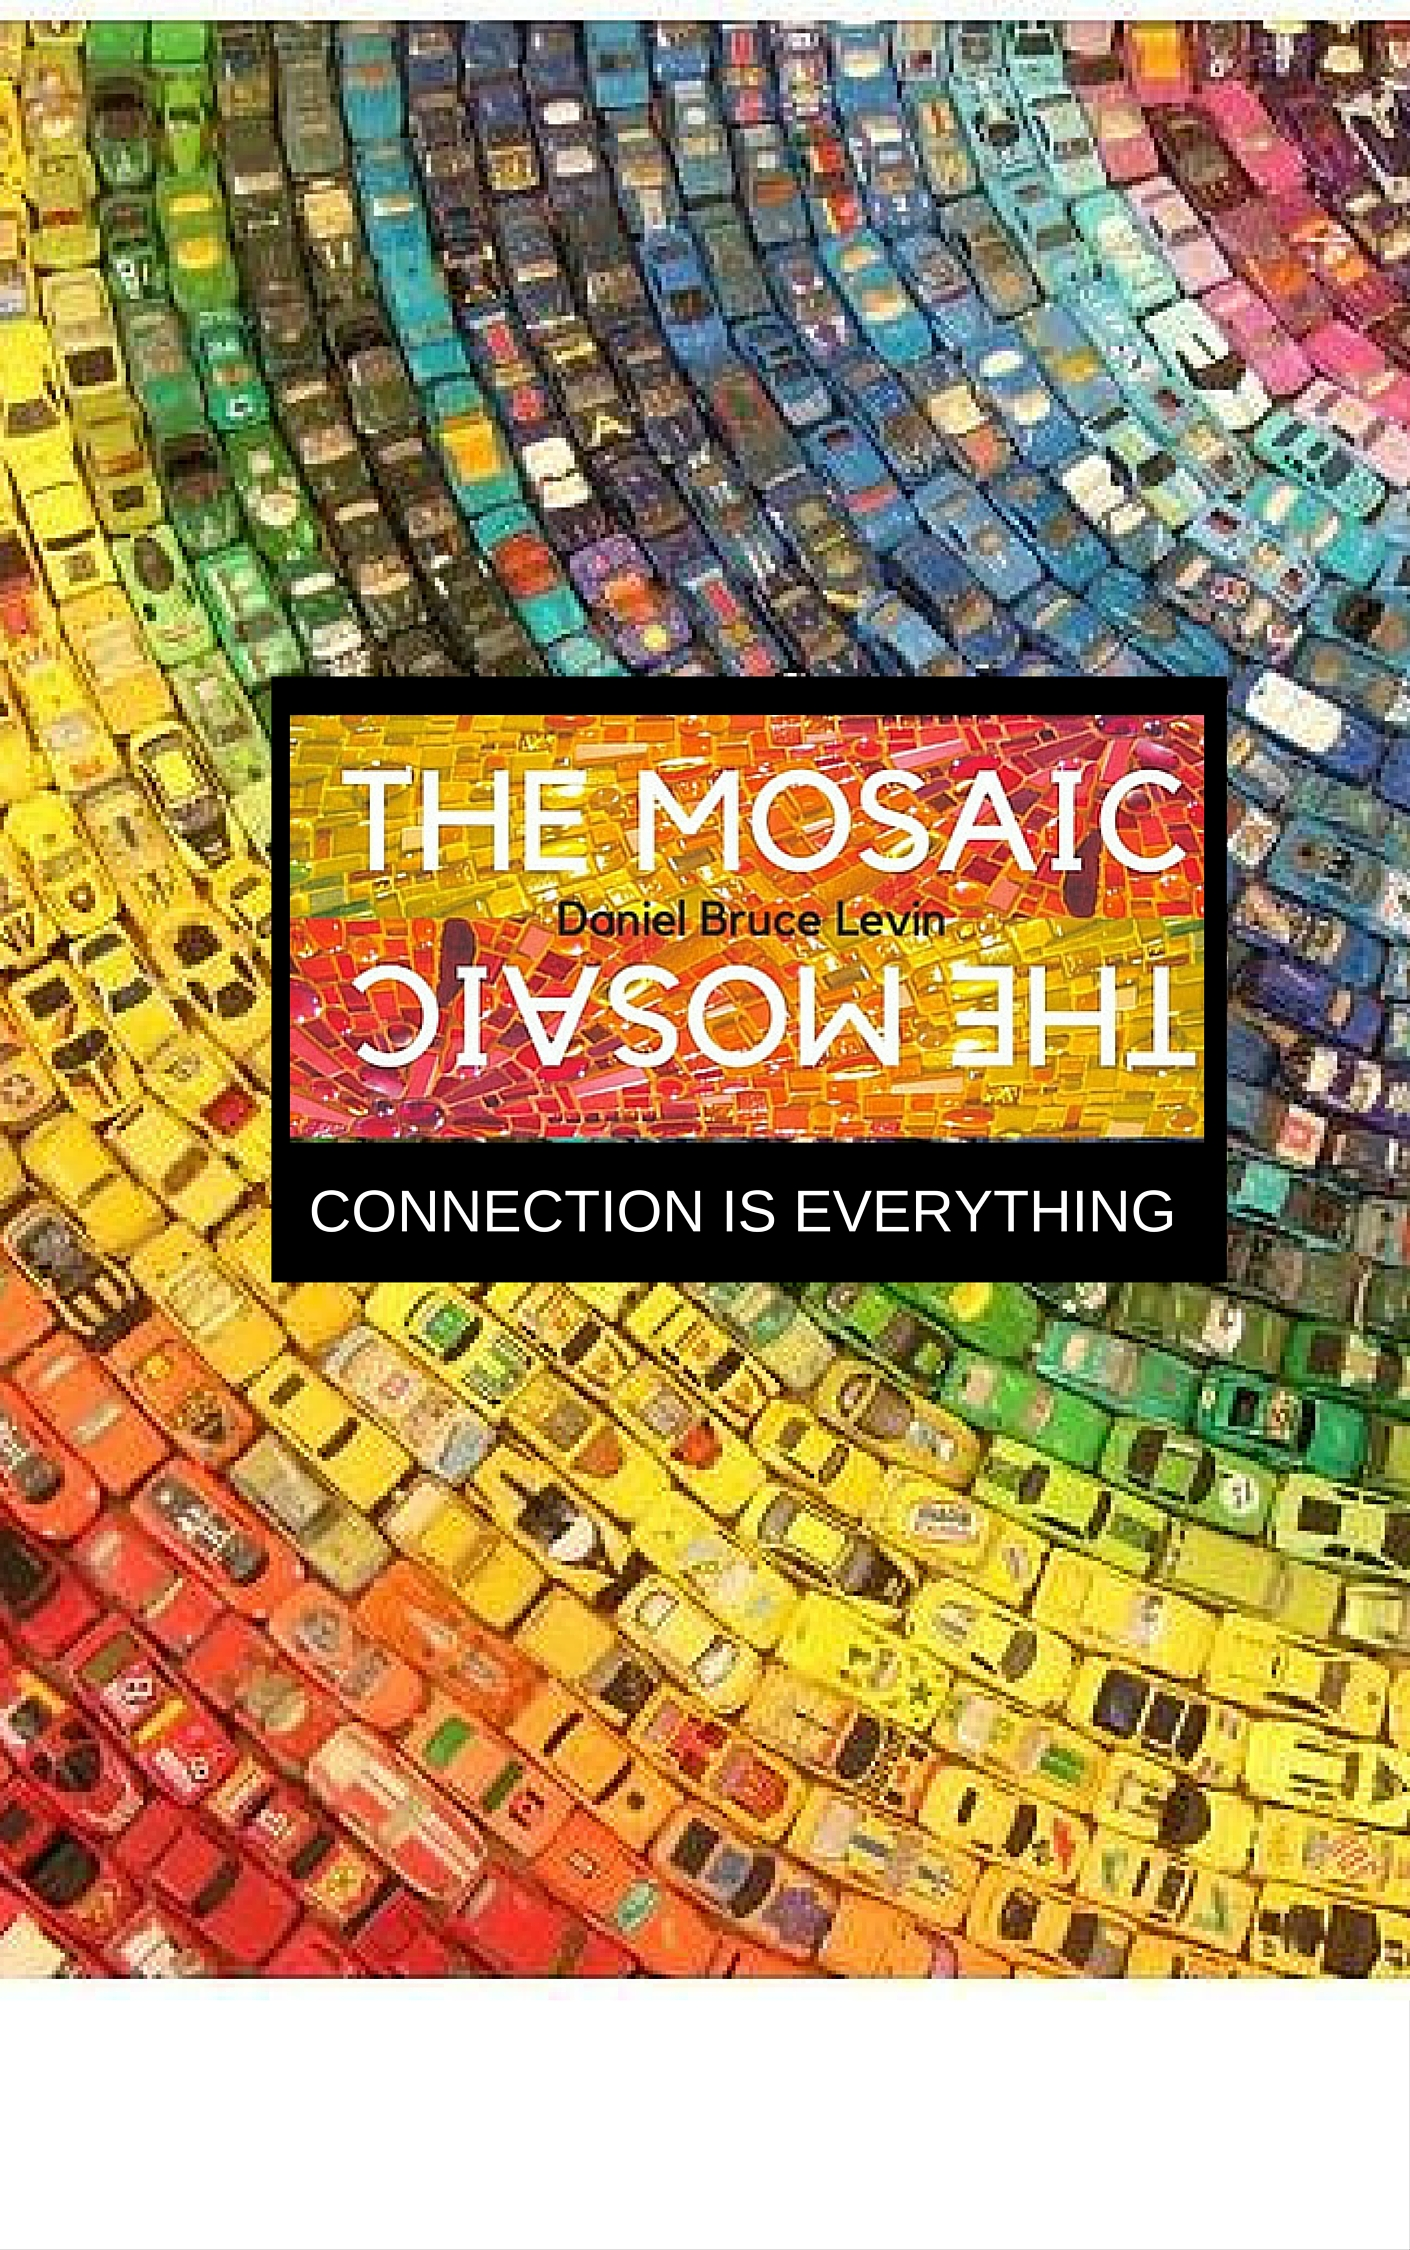 The mosaic CONNECTION IS EVERYTHING